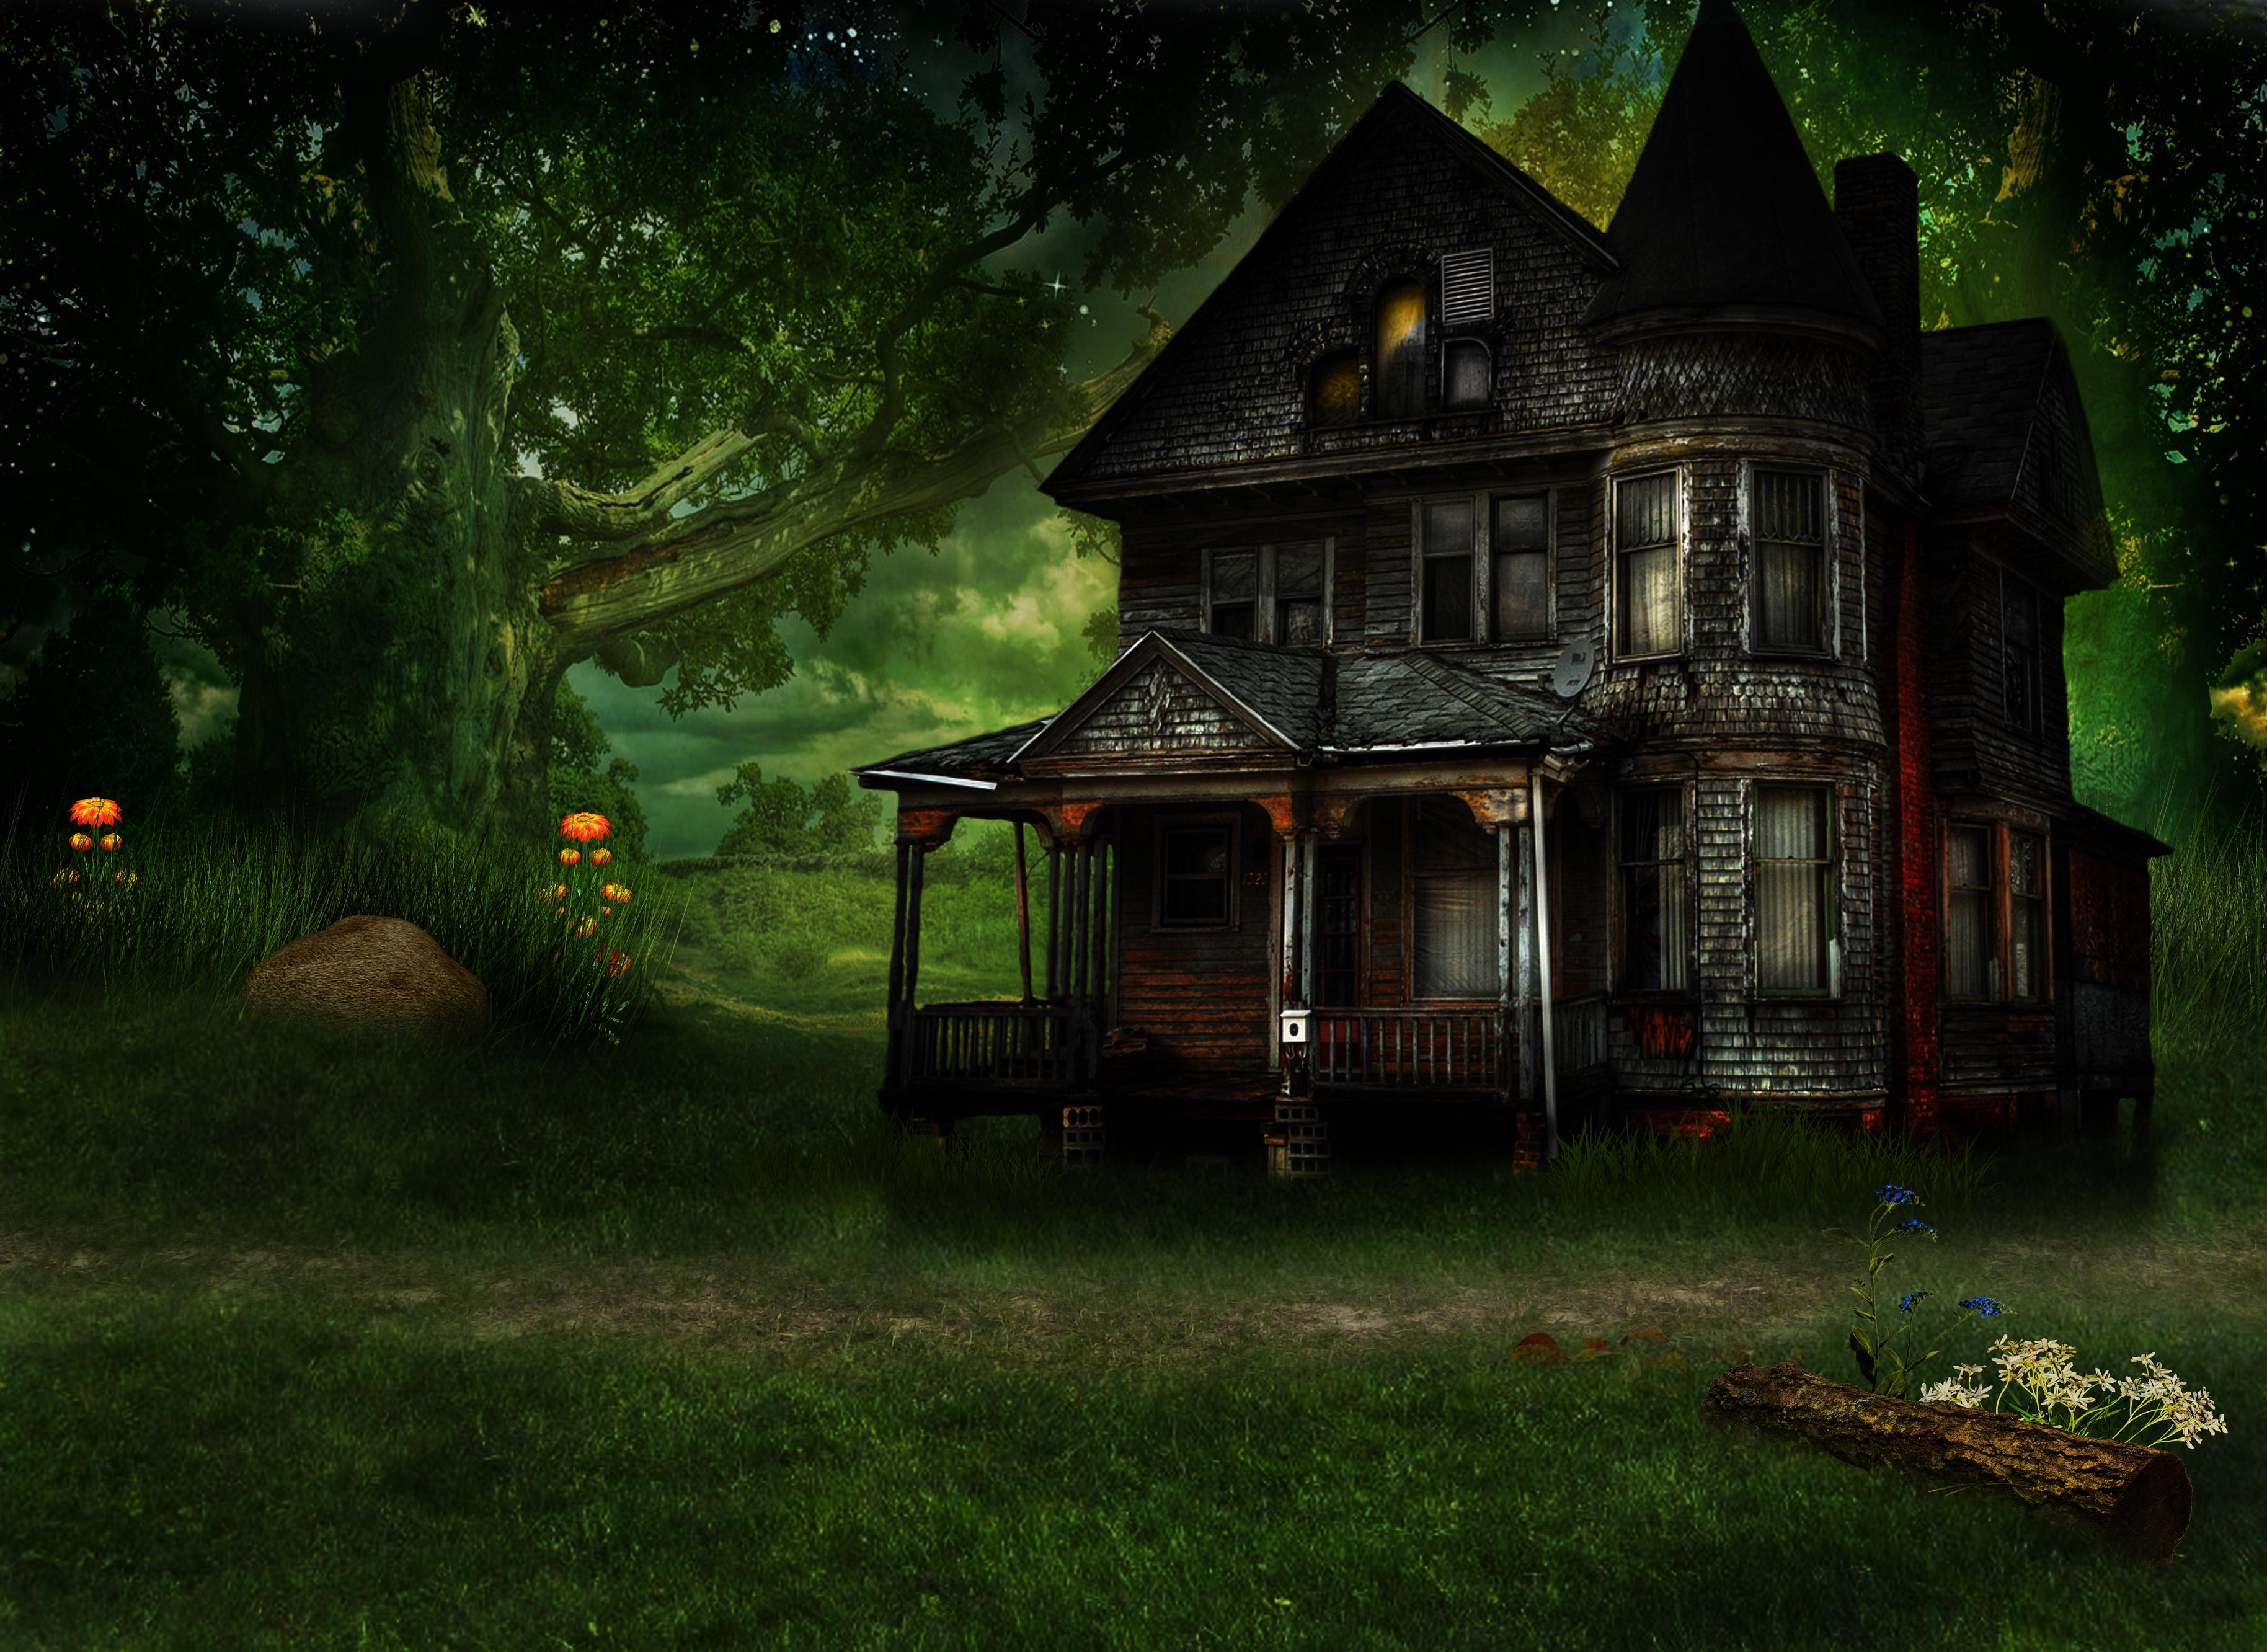 Haunted house hd wallpaper wallpapersafari for House photos hd